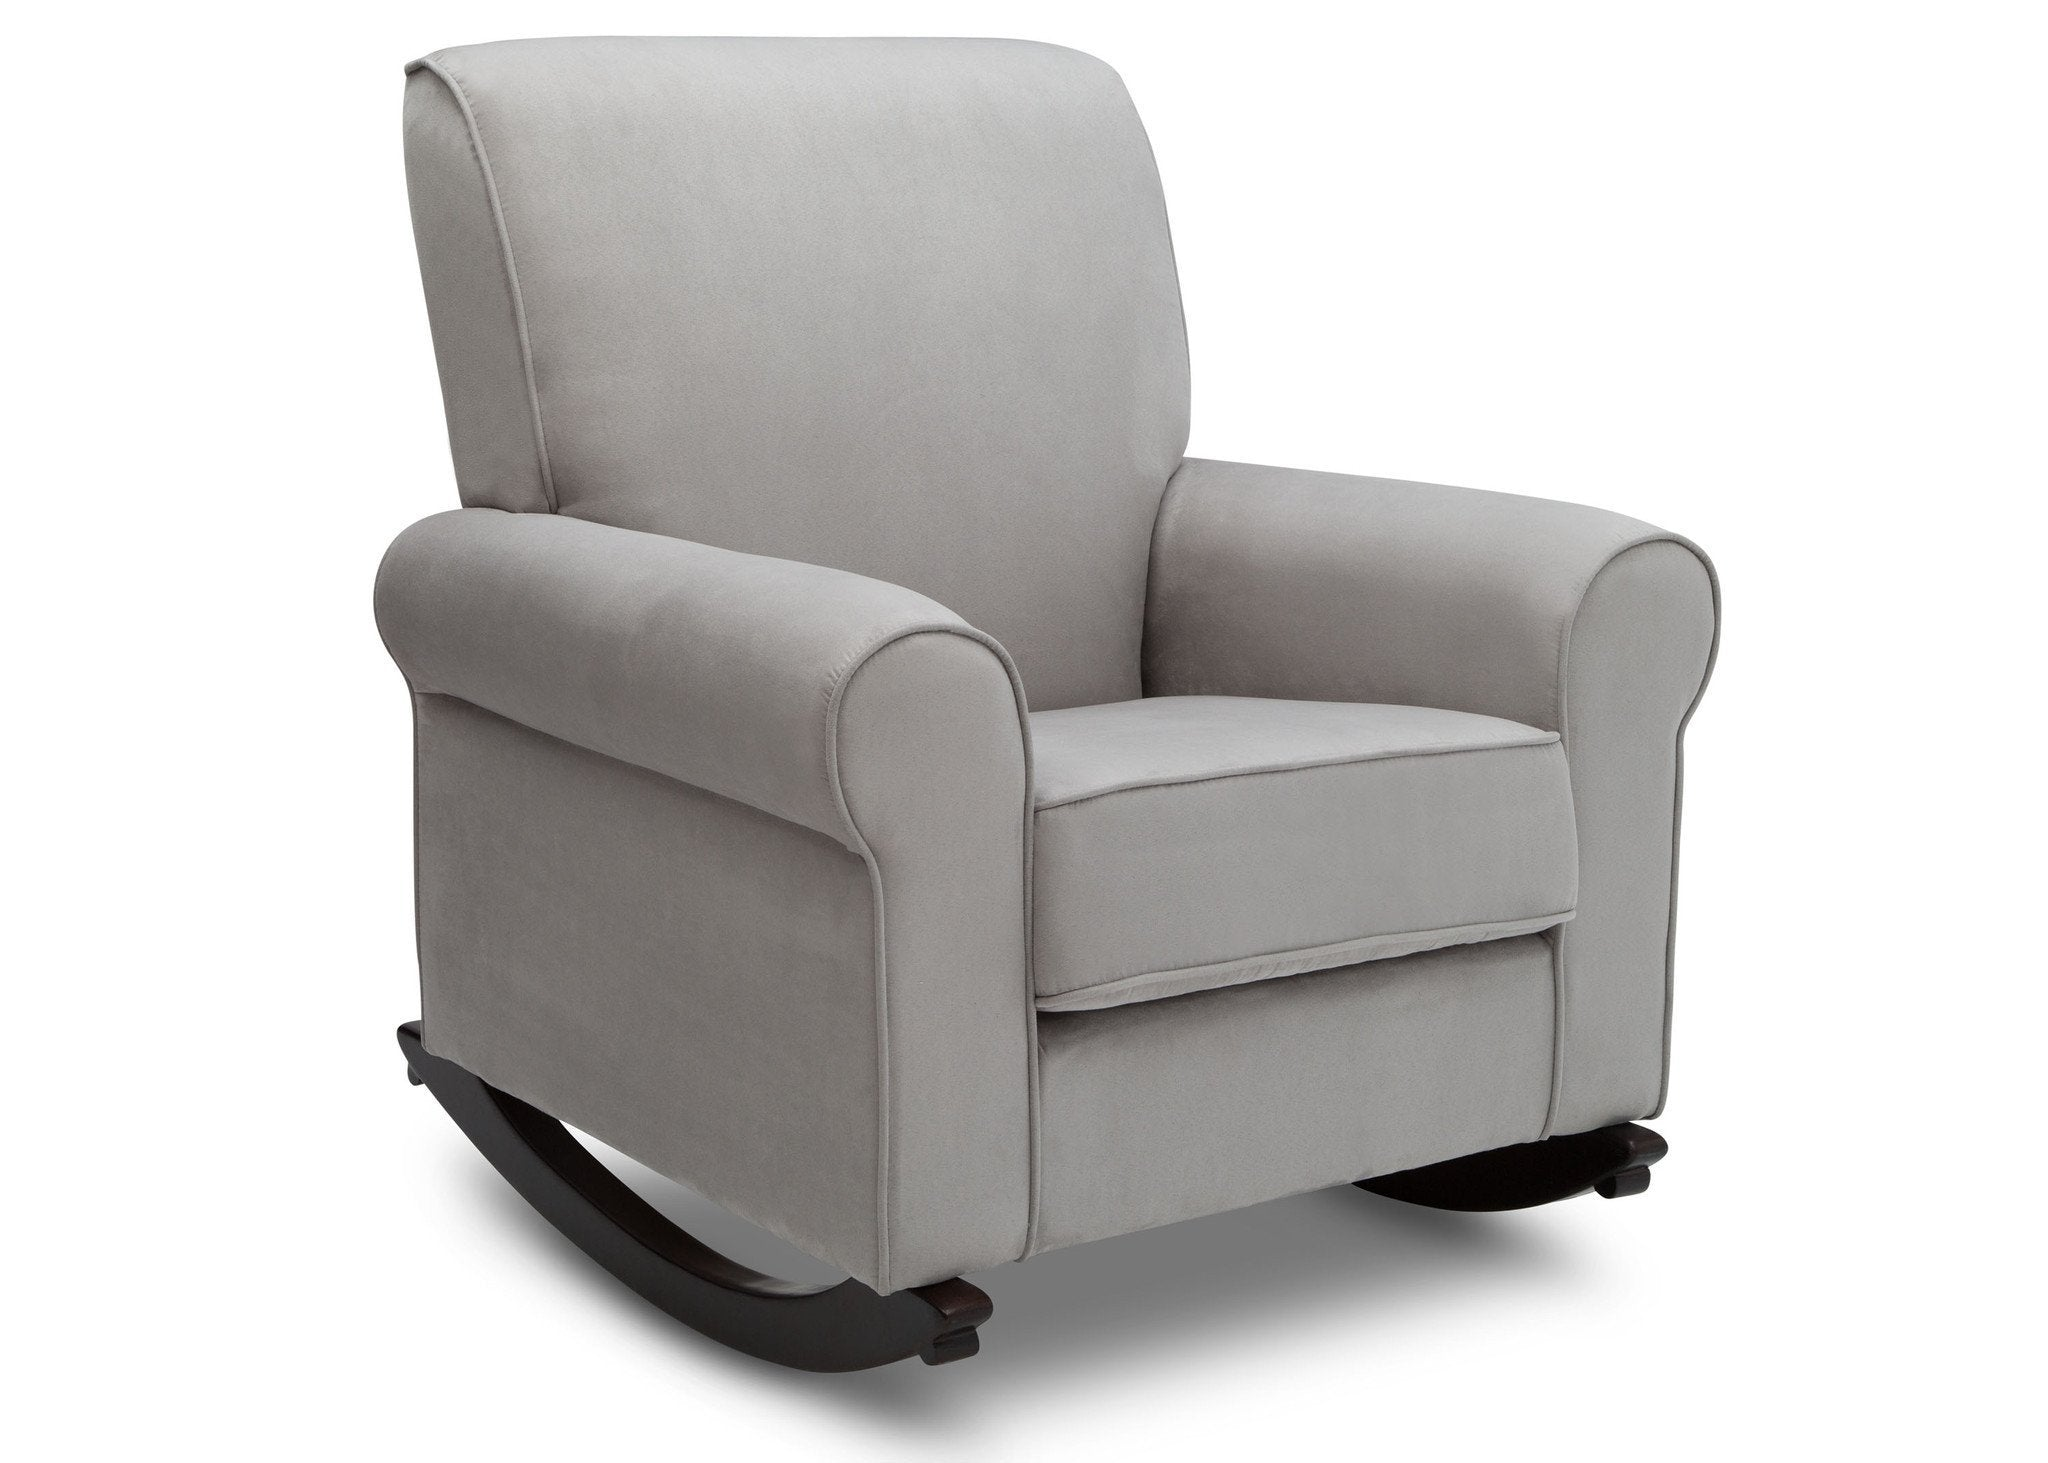 Delta Children Dove Grey (034) Rowen Nursery Rocking Chair, right side view, b3b